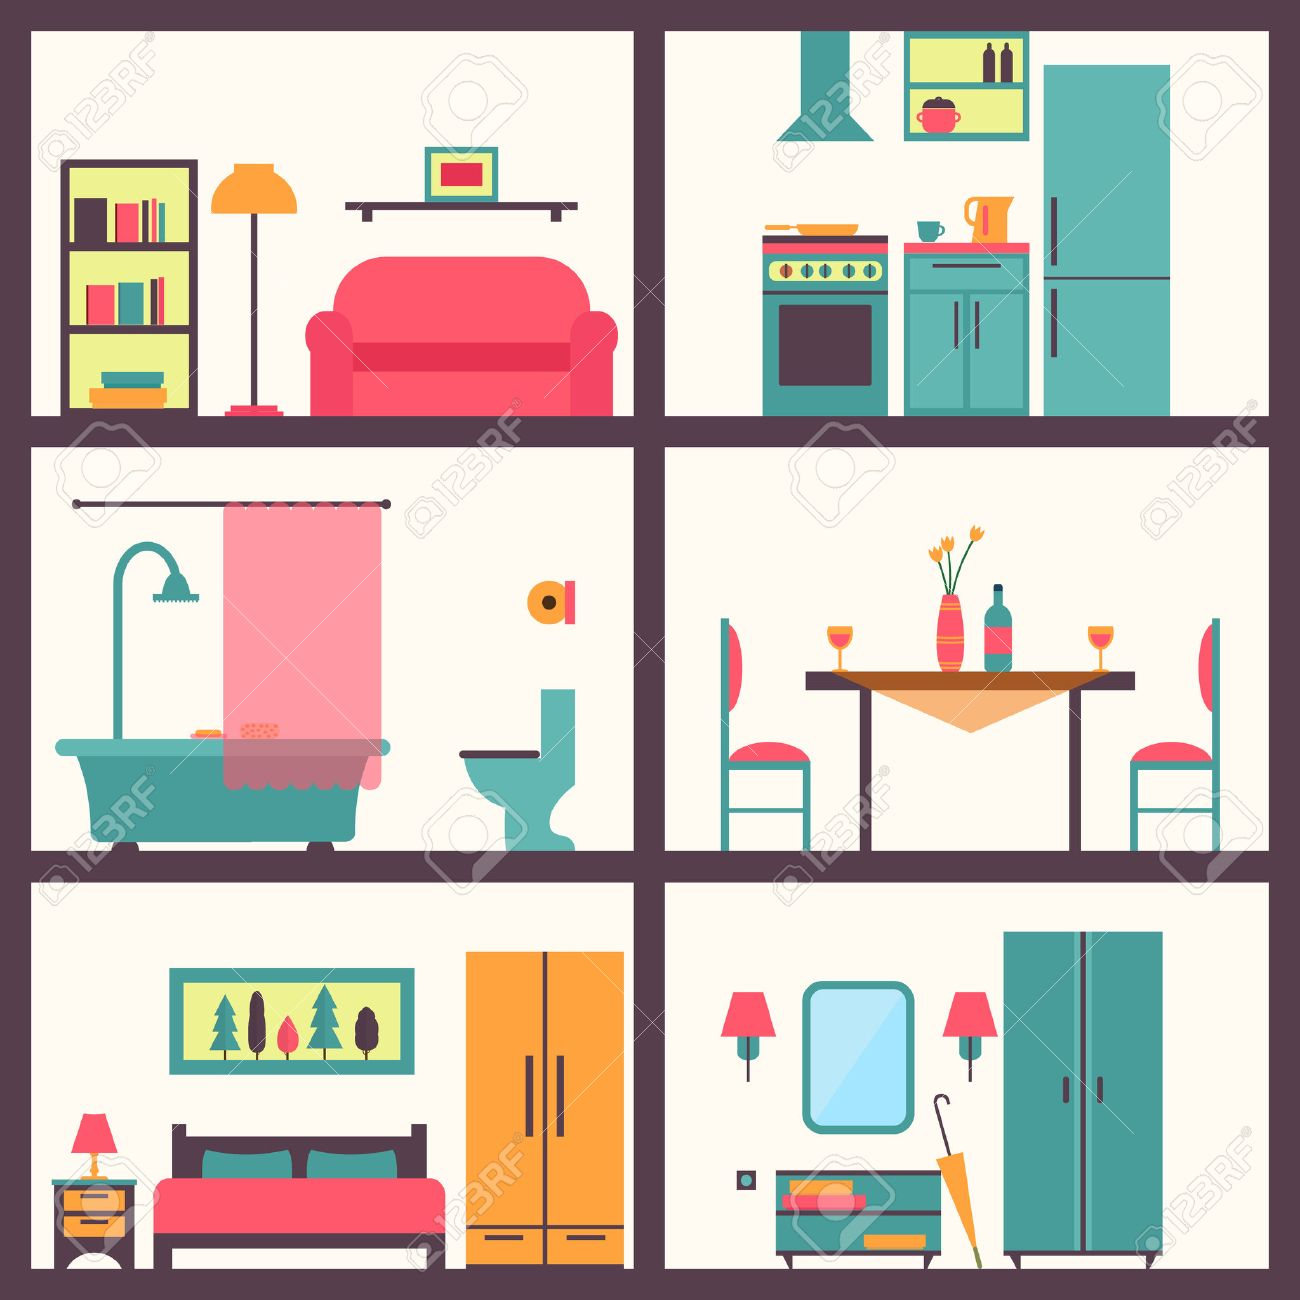 House in cut. Detailed modern house interior. Rooms with furniture. Flat style vector illustration. - 42448572